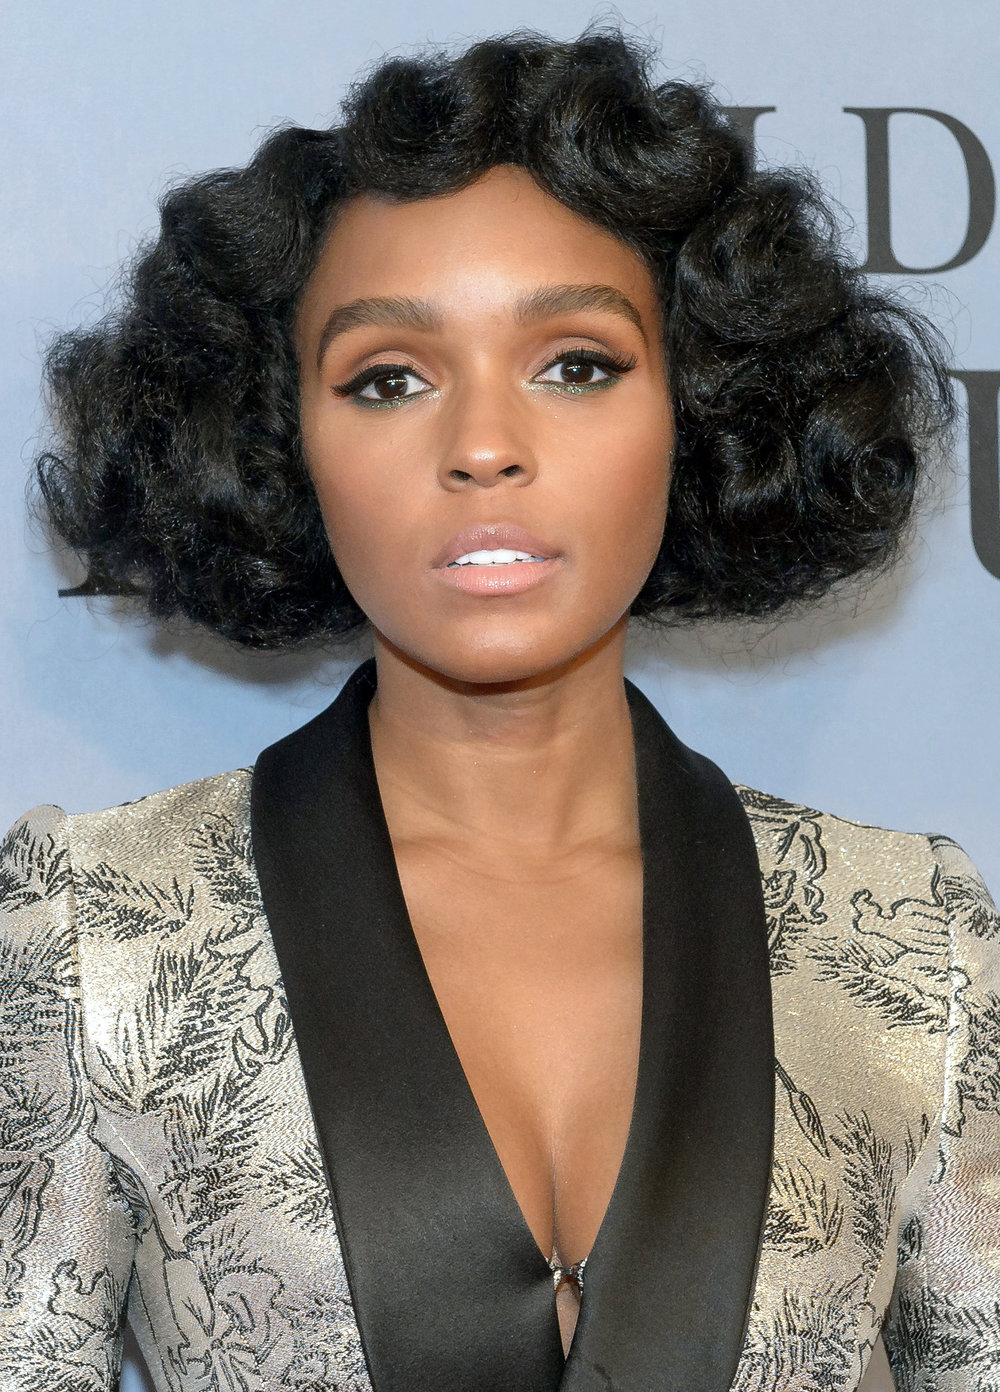 Artist Janelle Monáe (pictured above) walks the red carpet premiere of film  Hidden Figures  in New York City. Monáe will release her third studio album, Dirty Computer, on Friday April 27 (courtesy of Creative Commons).